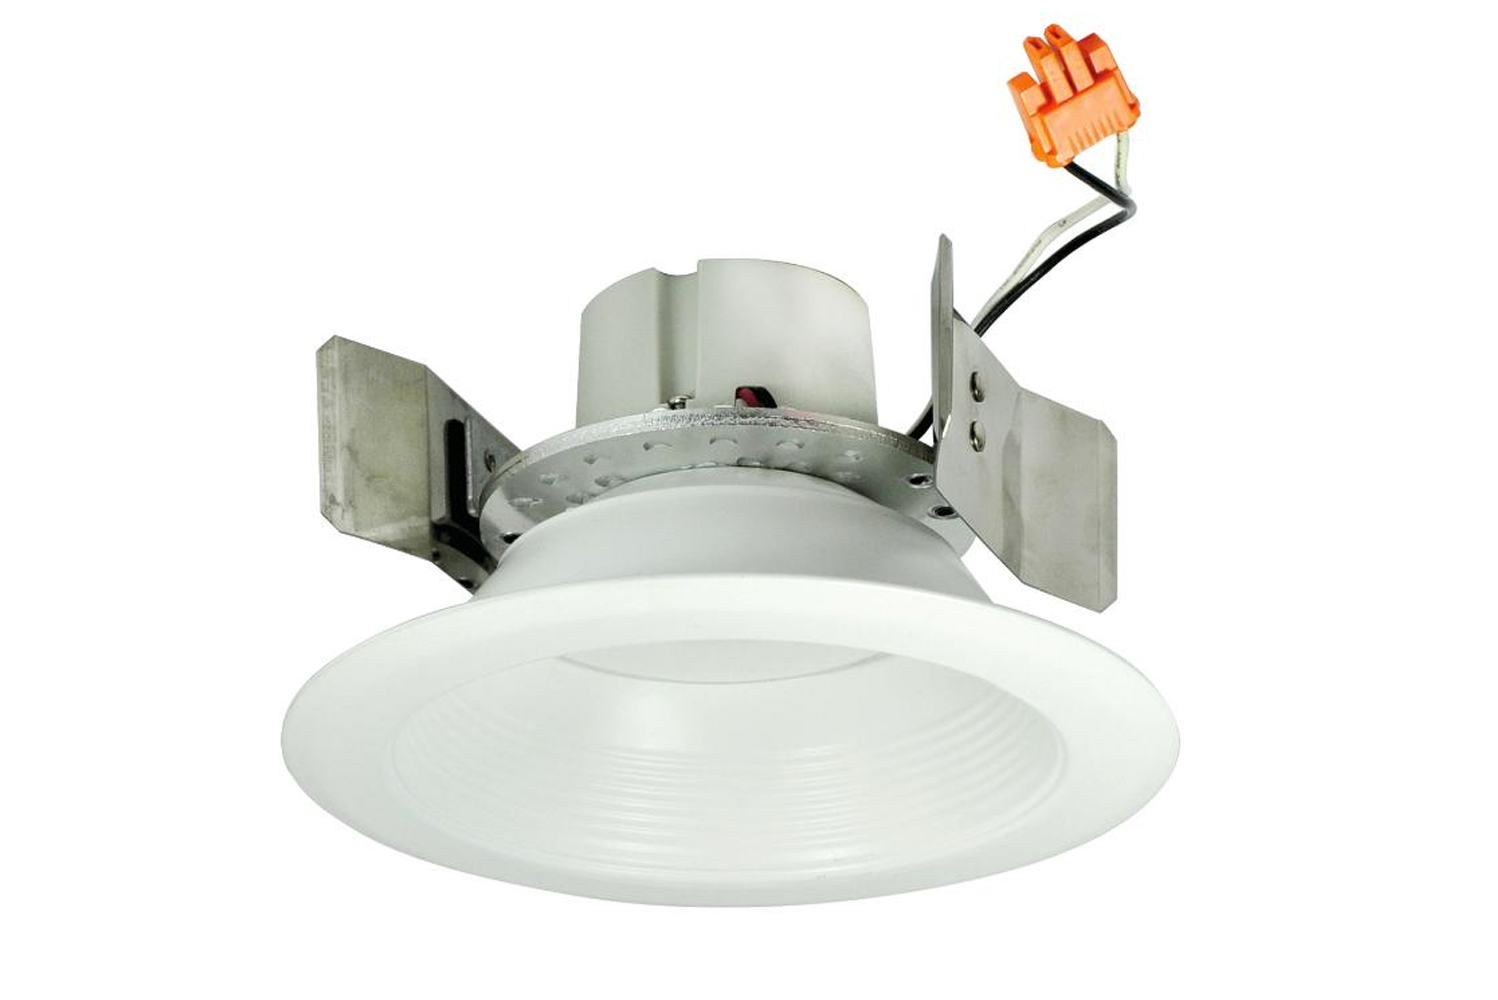 Cobalt recessed downlights utilize the CREE COB technology for bright consistent output and low power consumption.